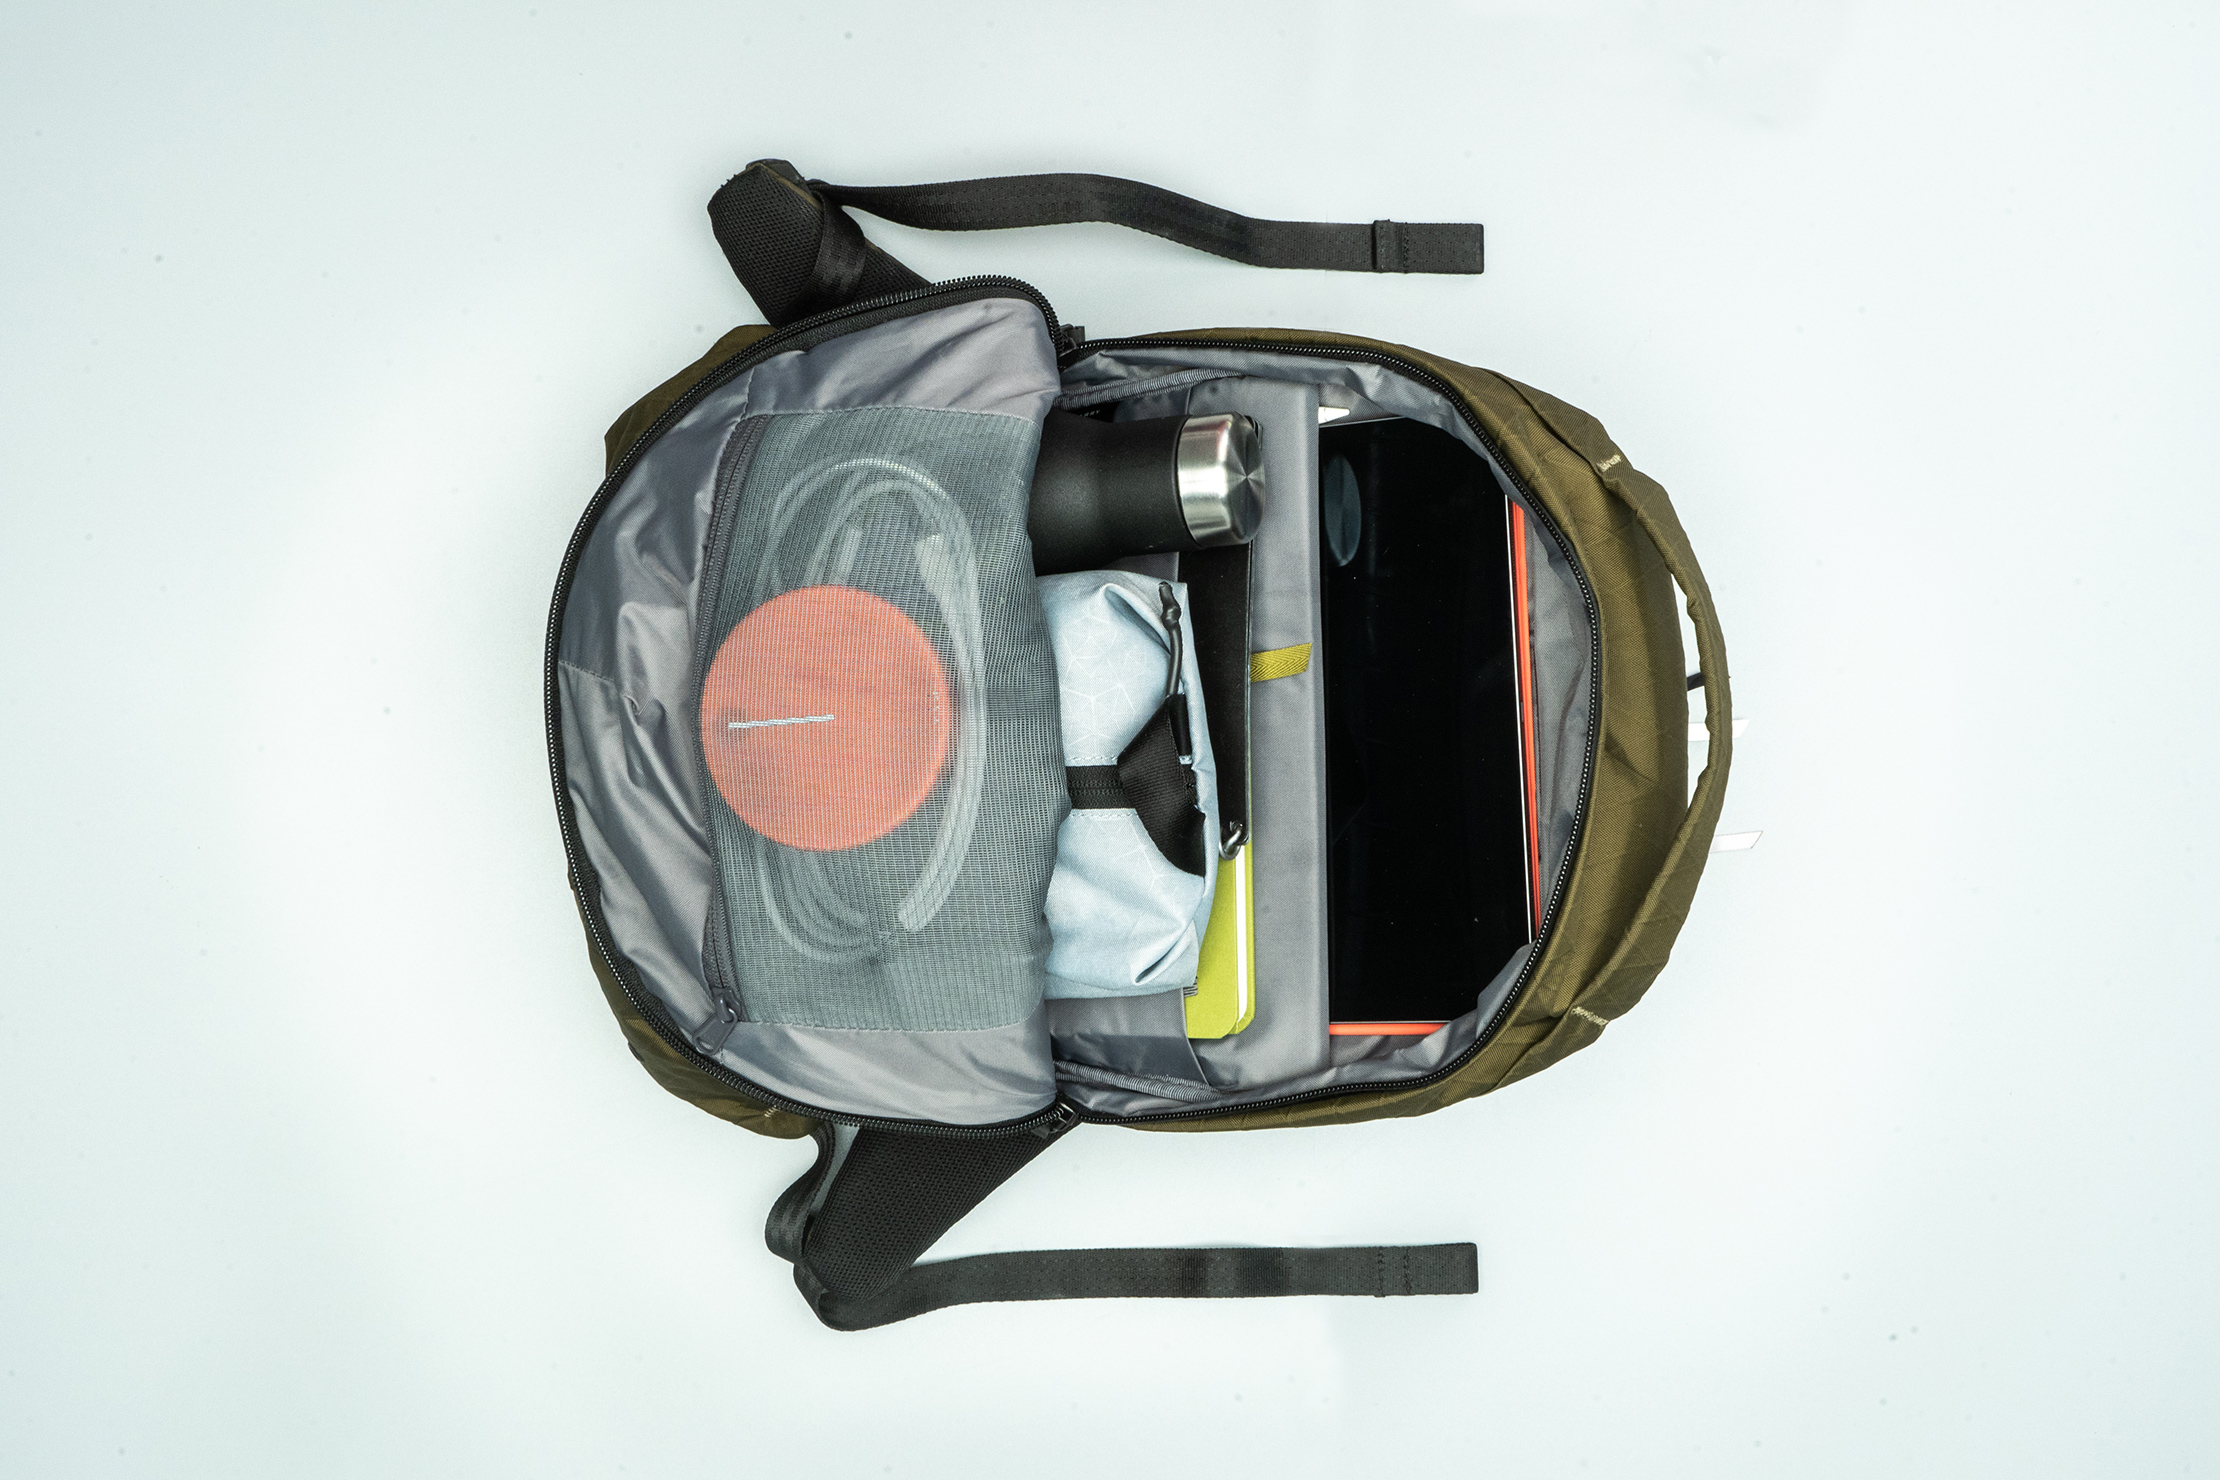 Able Carry Thirteen Daybag packed with gear